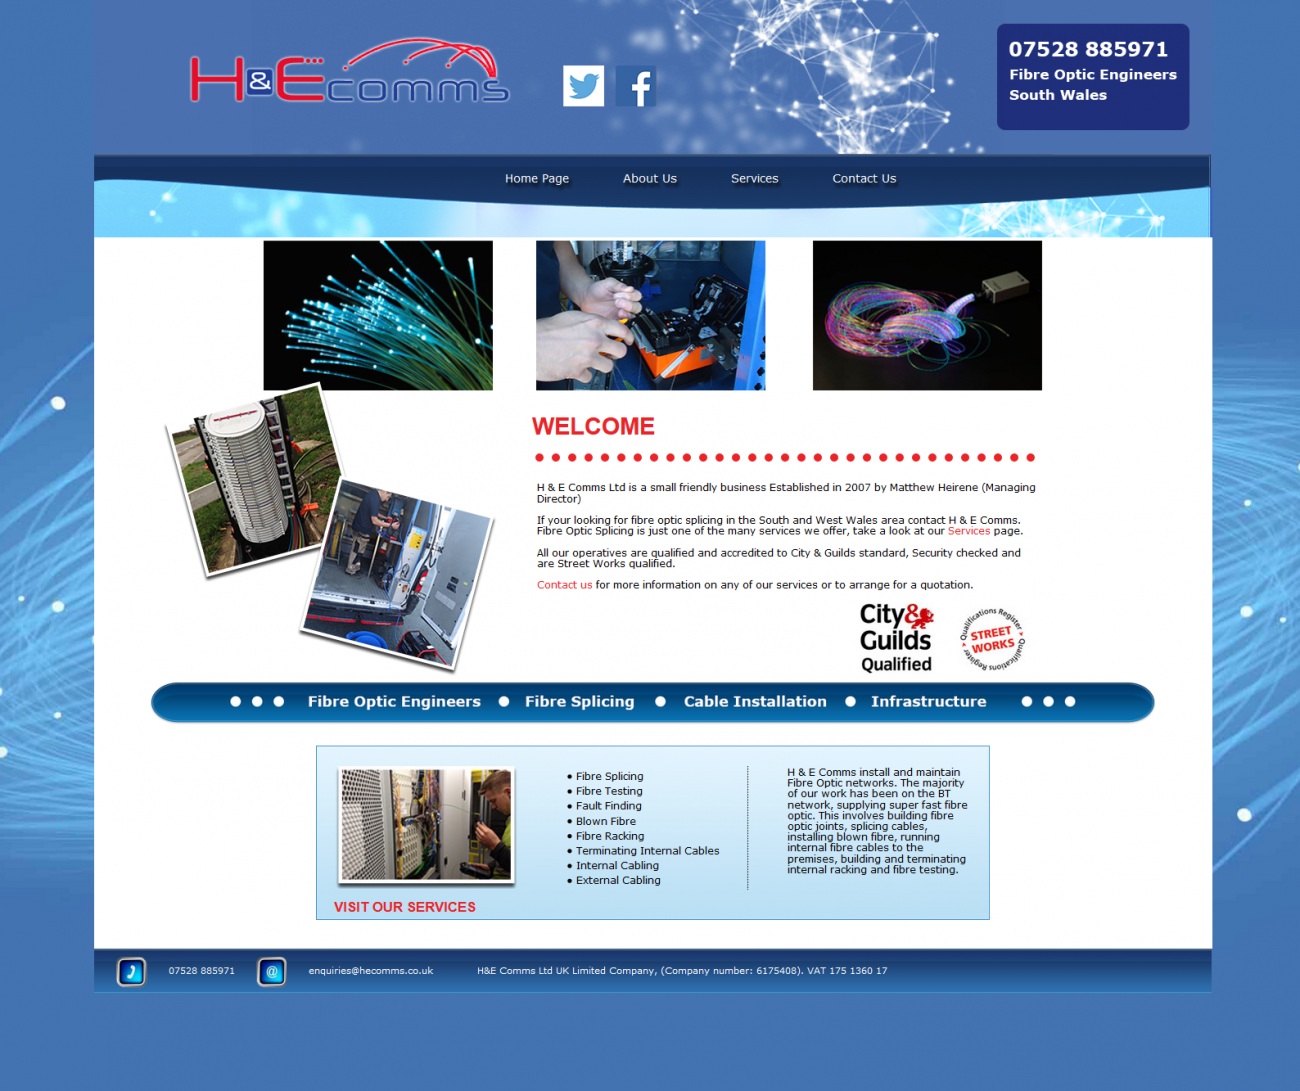 An image from H & E Comms Website